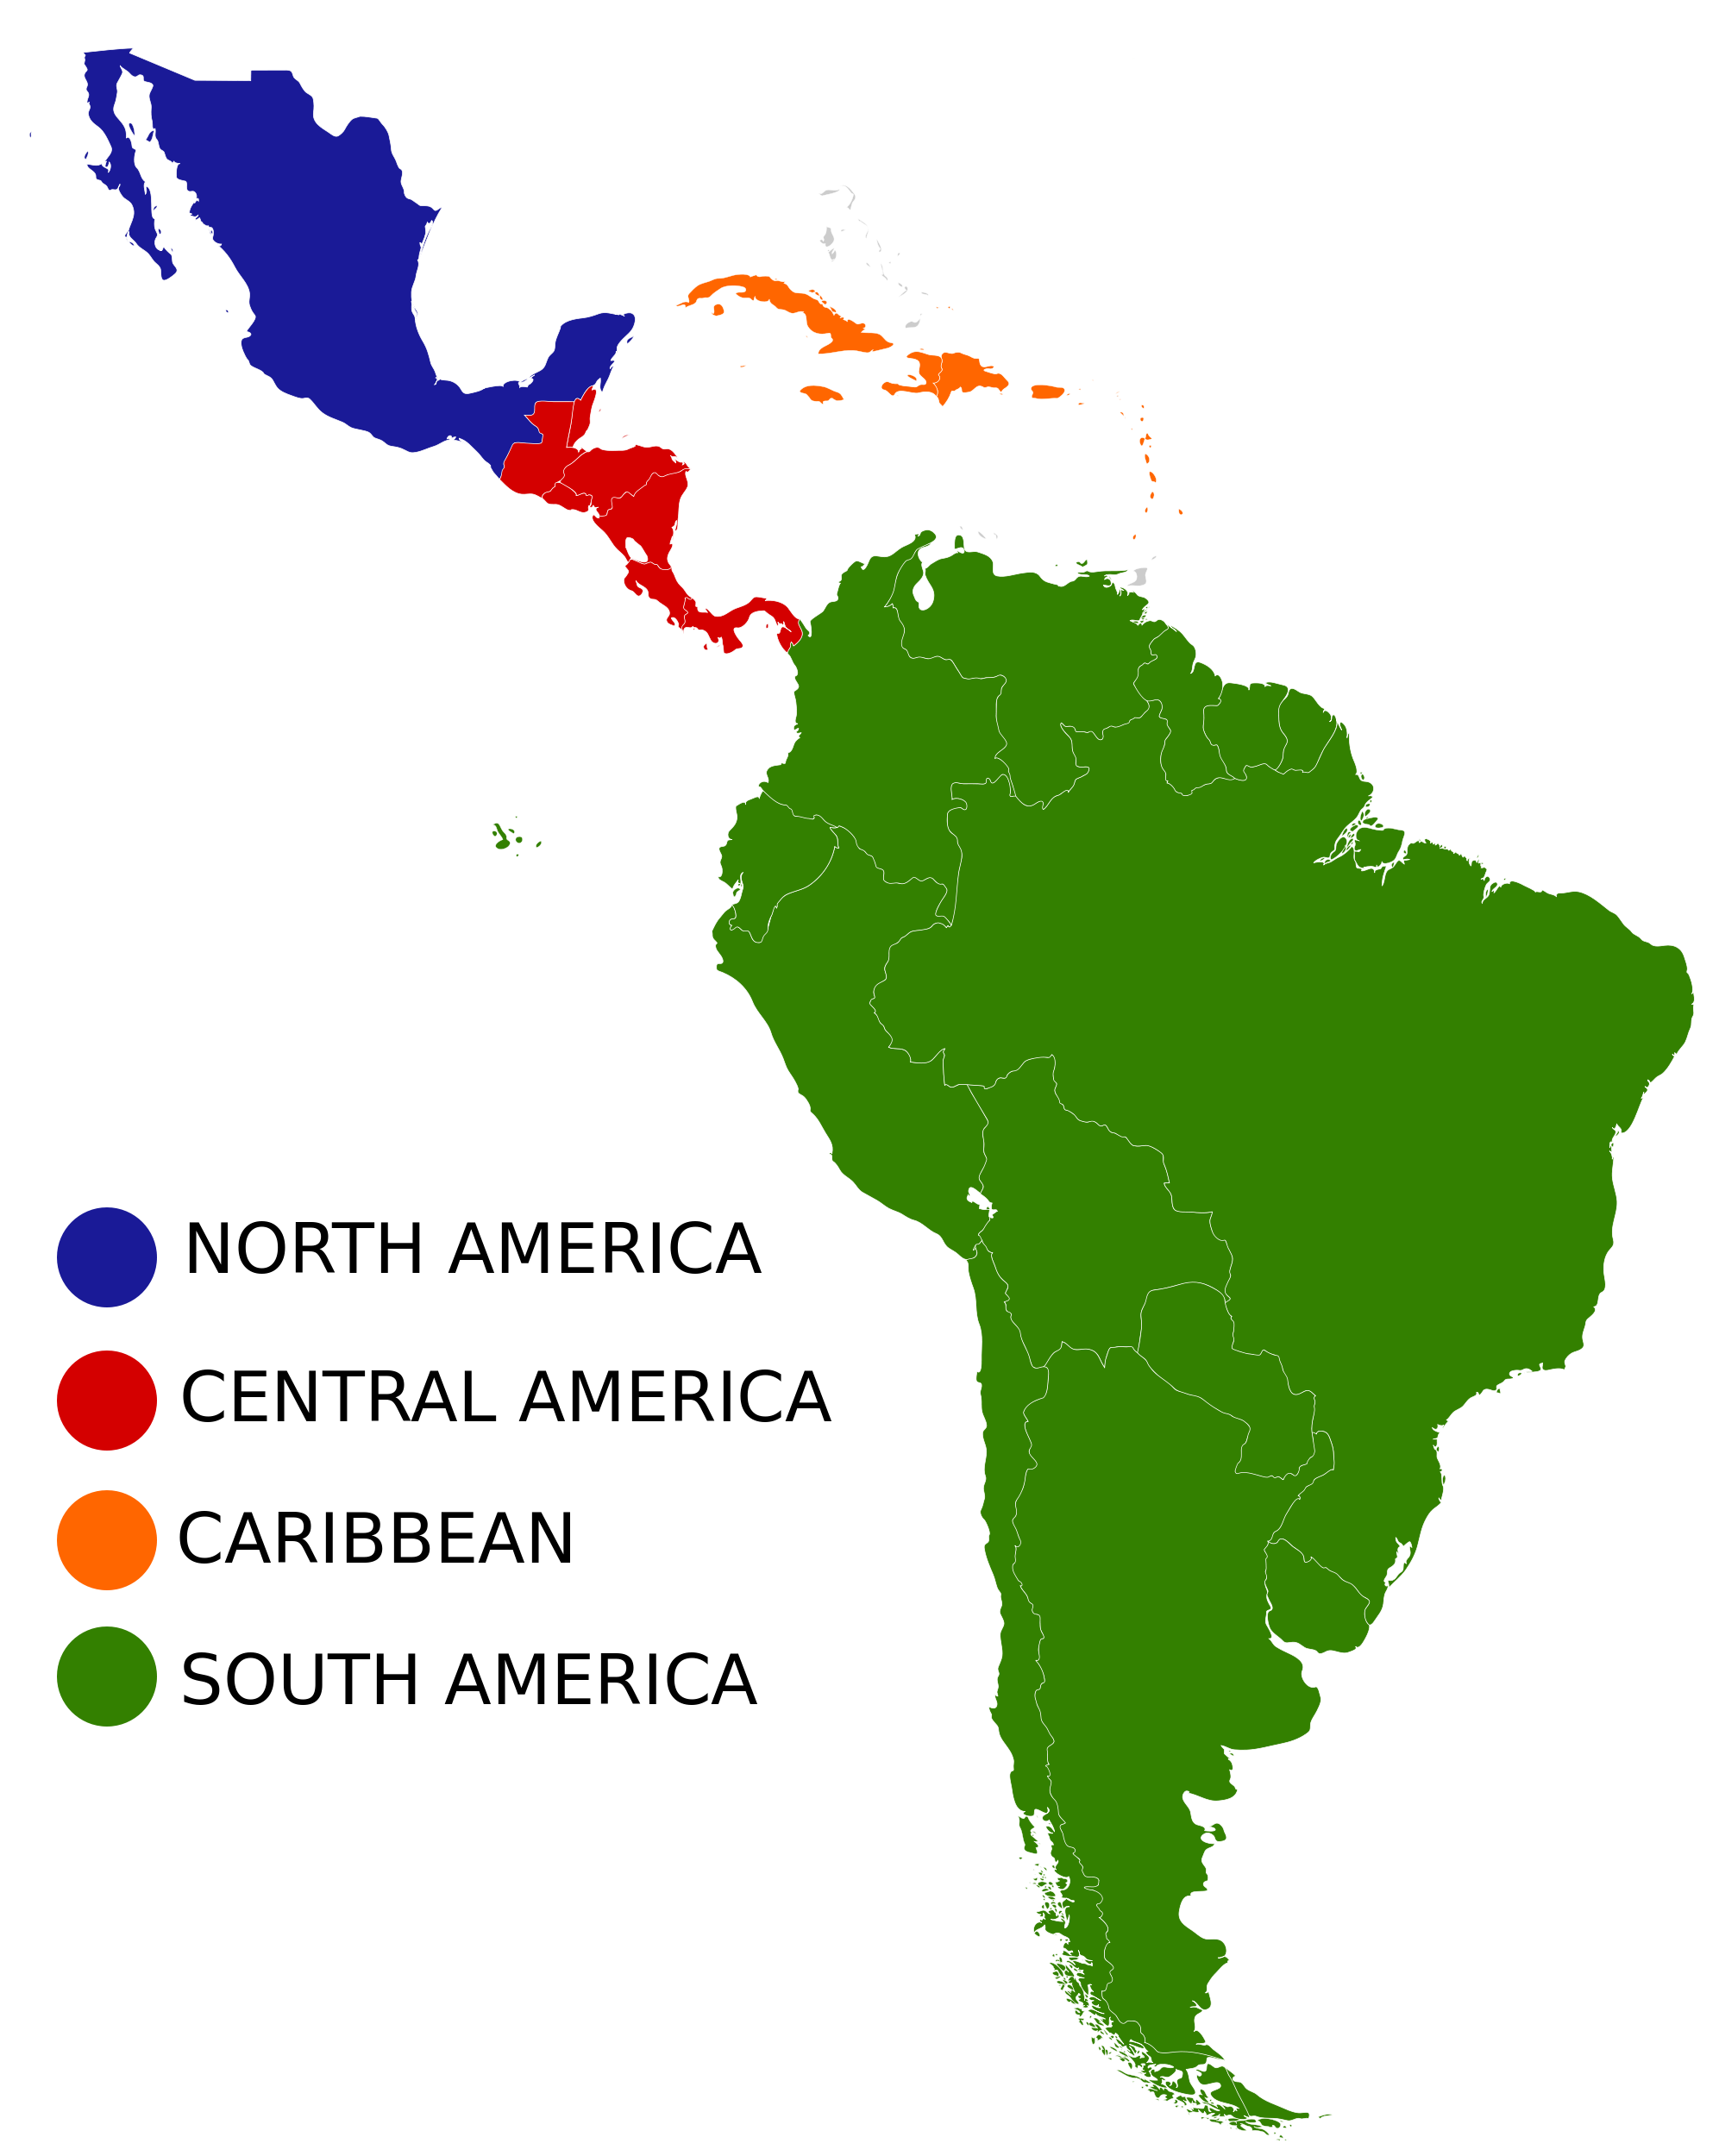 South America Map Map Of South America Central America Geography - Central america and caribbean map quiz